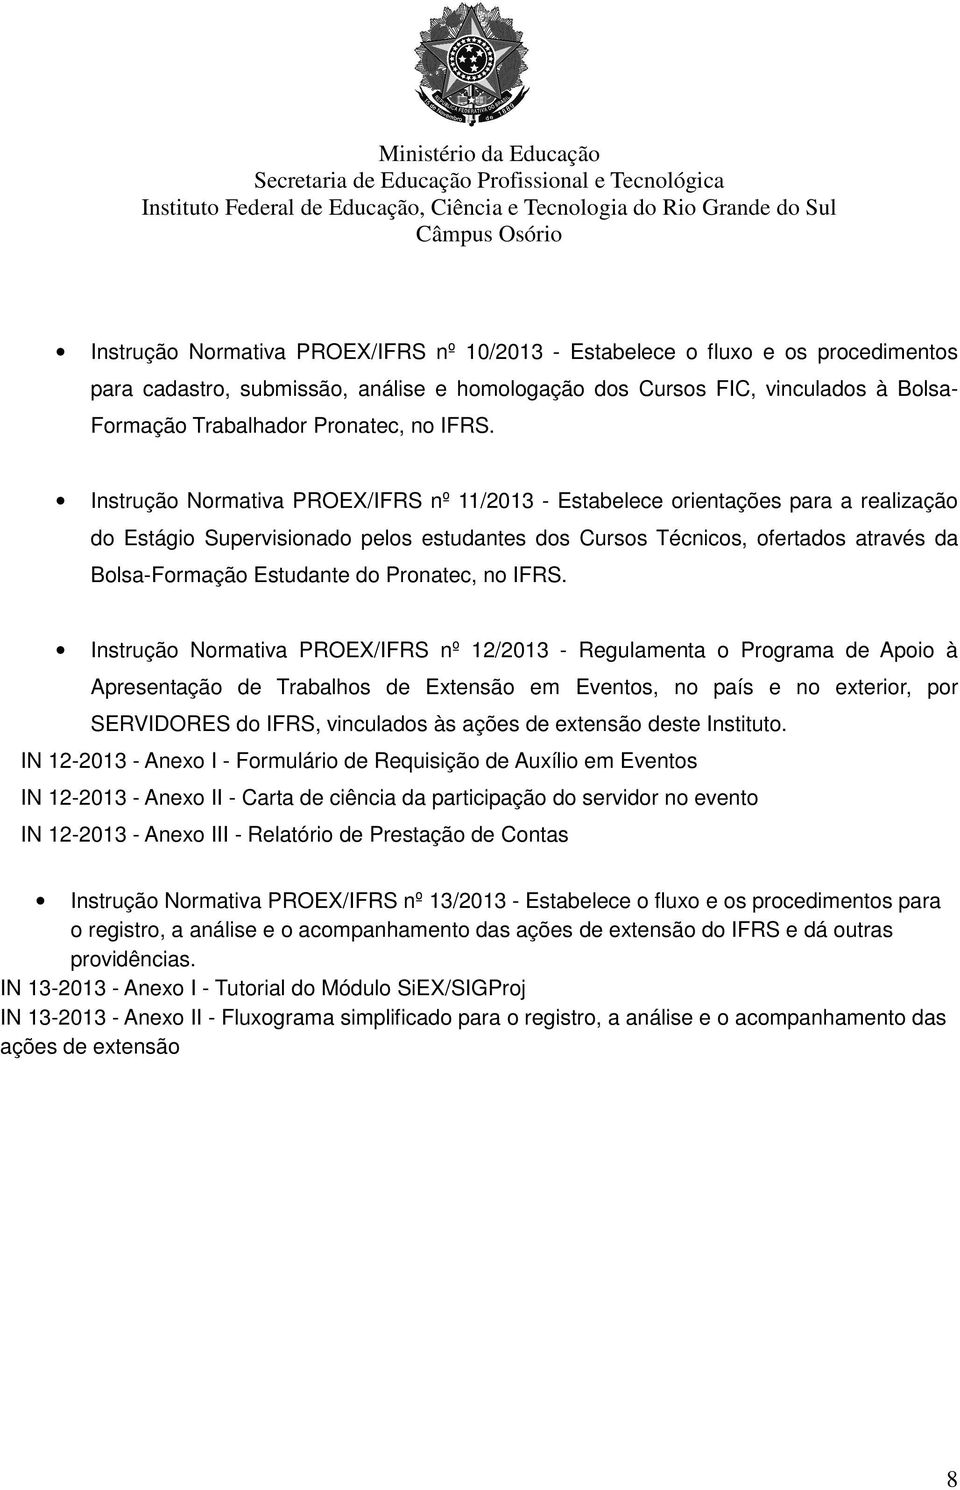 Estudante do Pronatec, no IFRS.